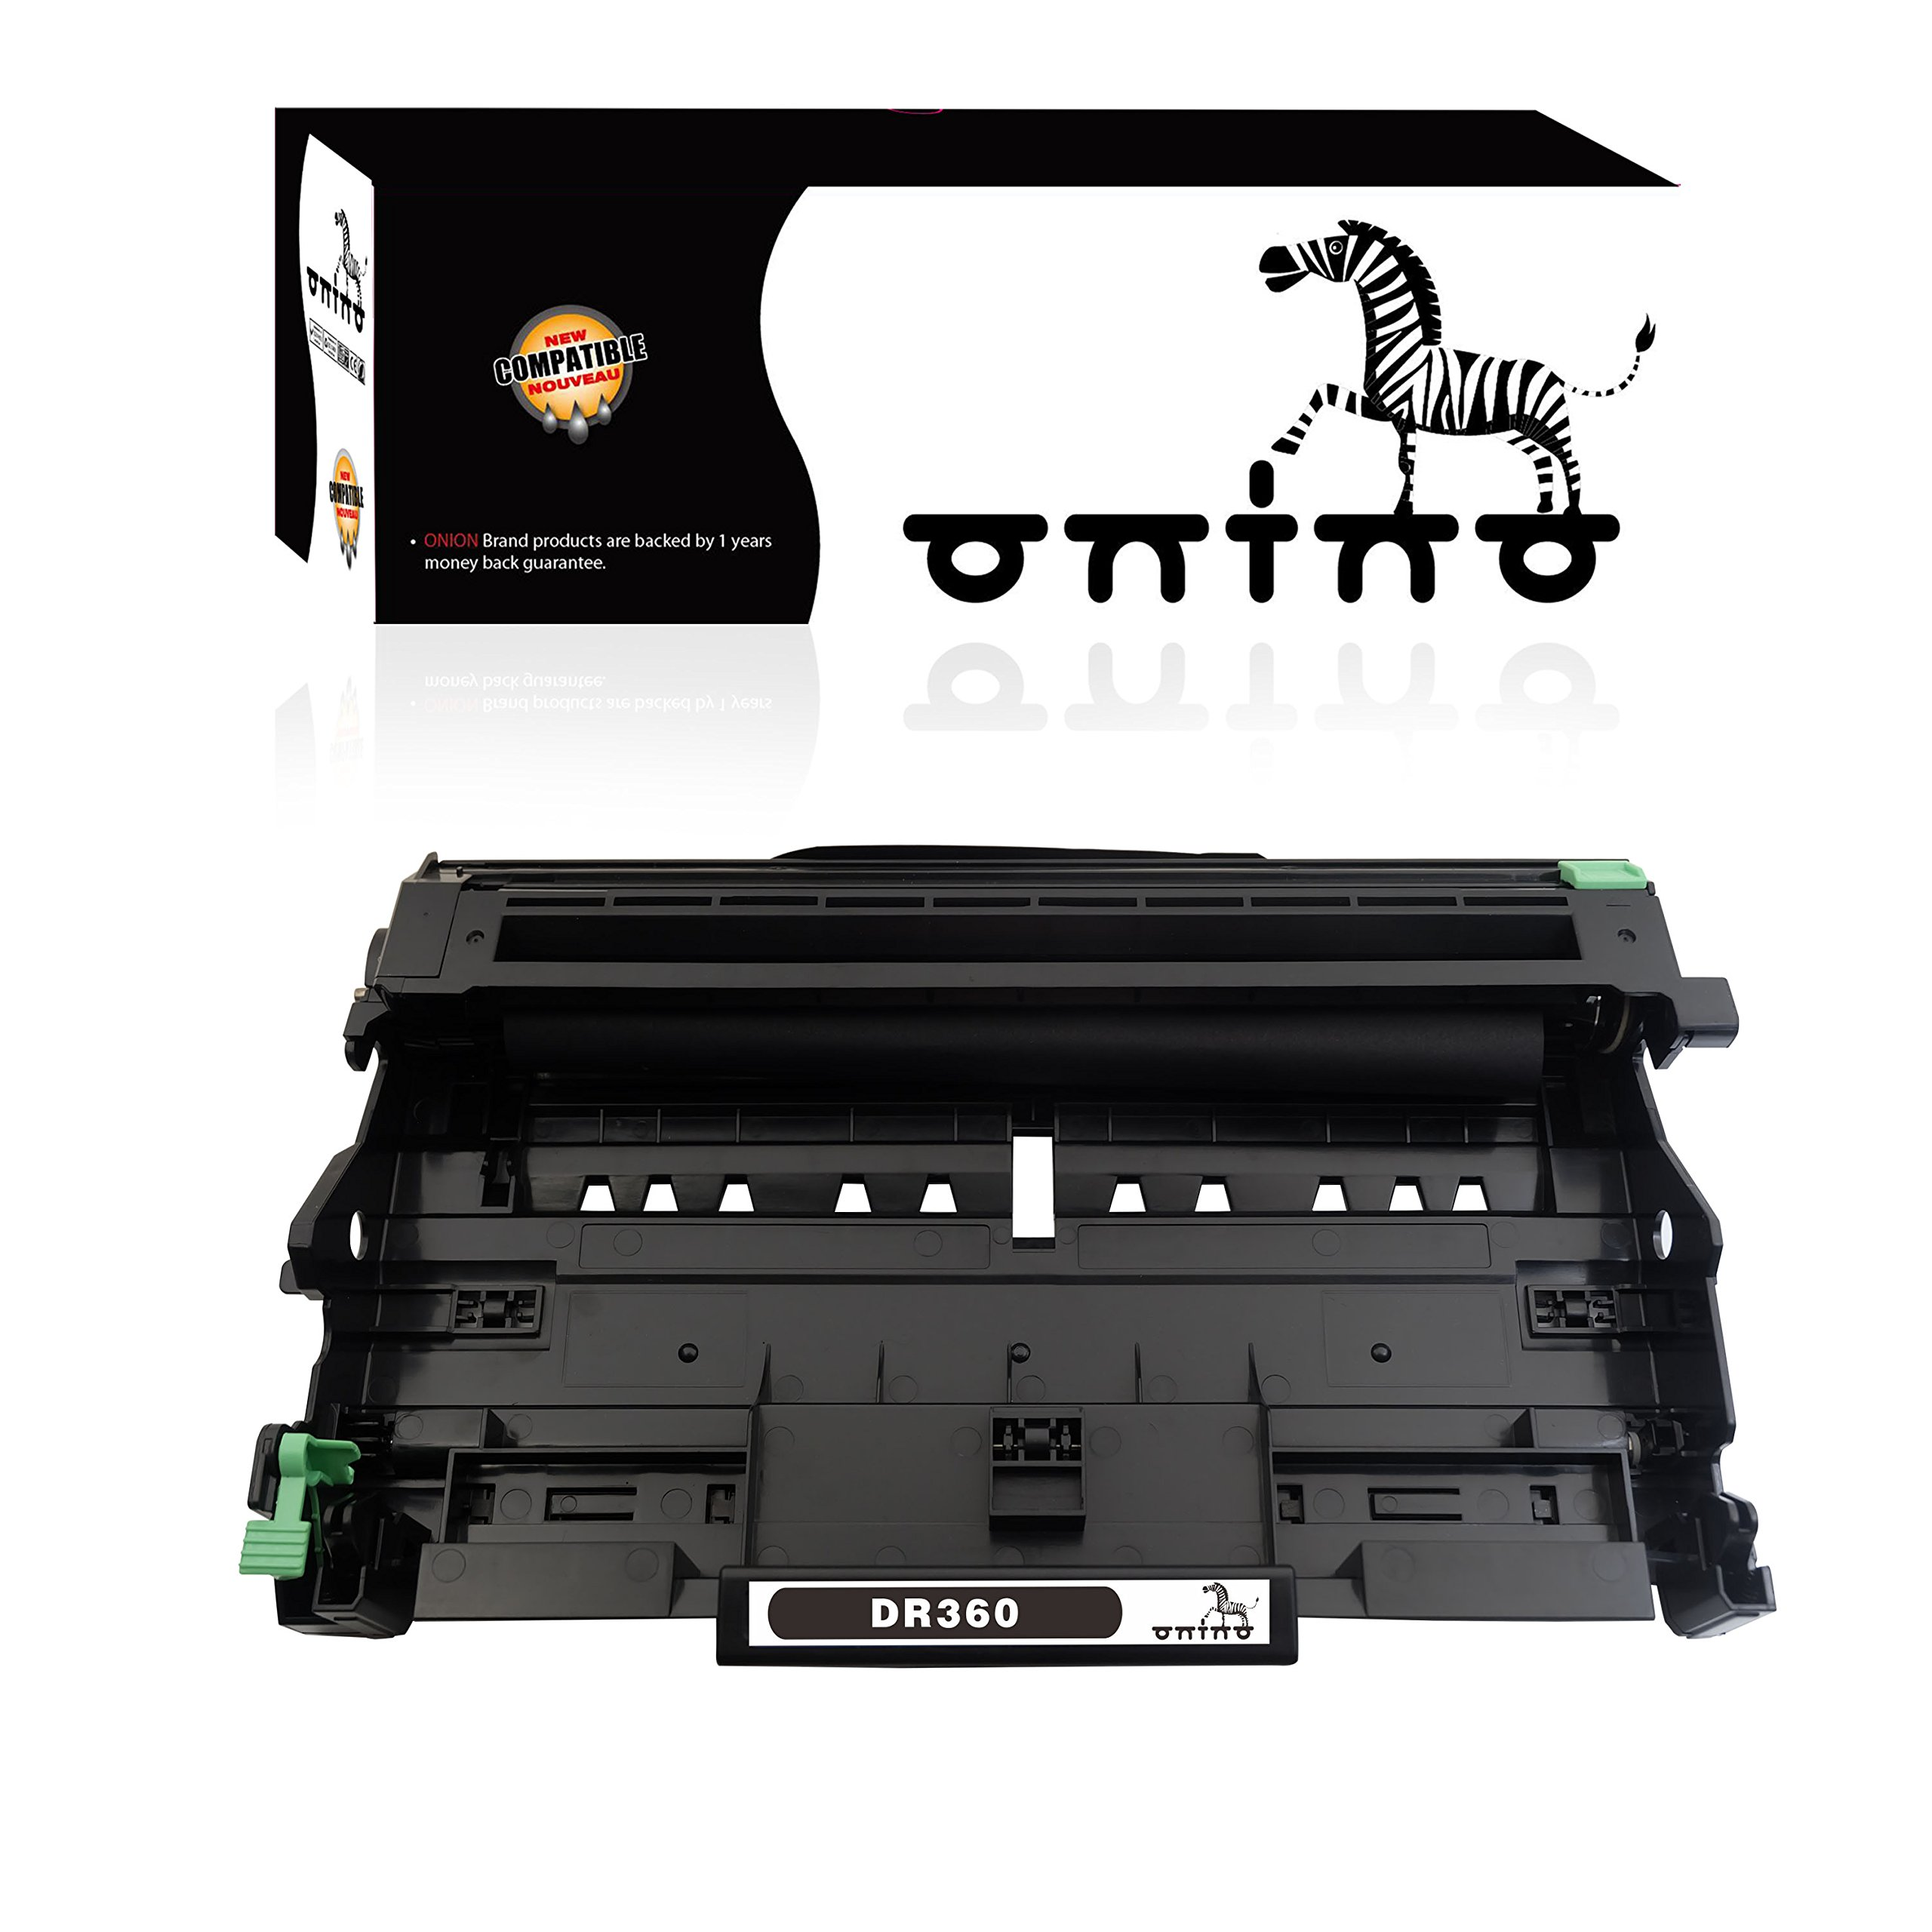 ONINO Replacement Drum Unit for Brother DR360 Work with Brother HL-2140 HL-2150N HL-2170W DCP-7030 DCP-7040 MFC-7340 MFC-7840W MFC-7440N MFC-7345N